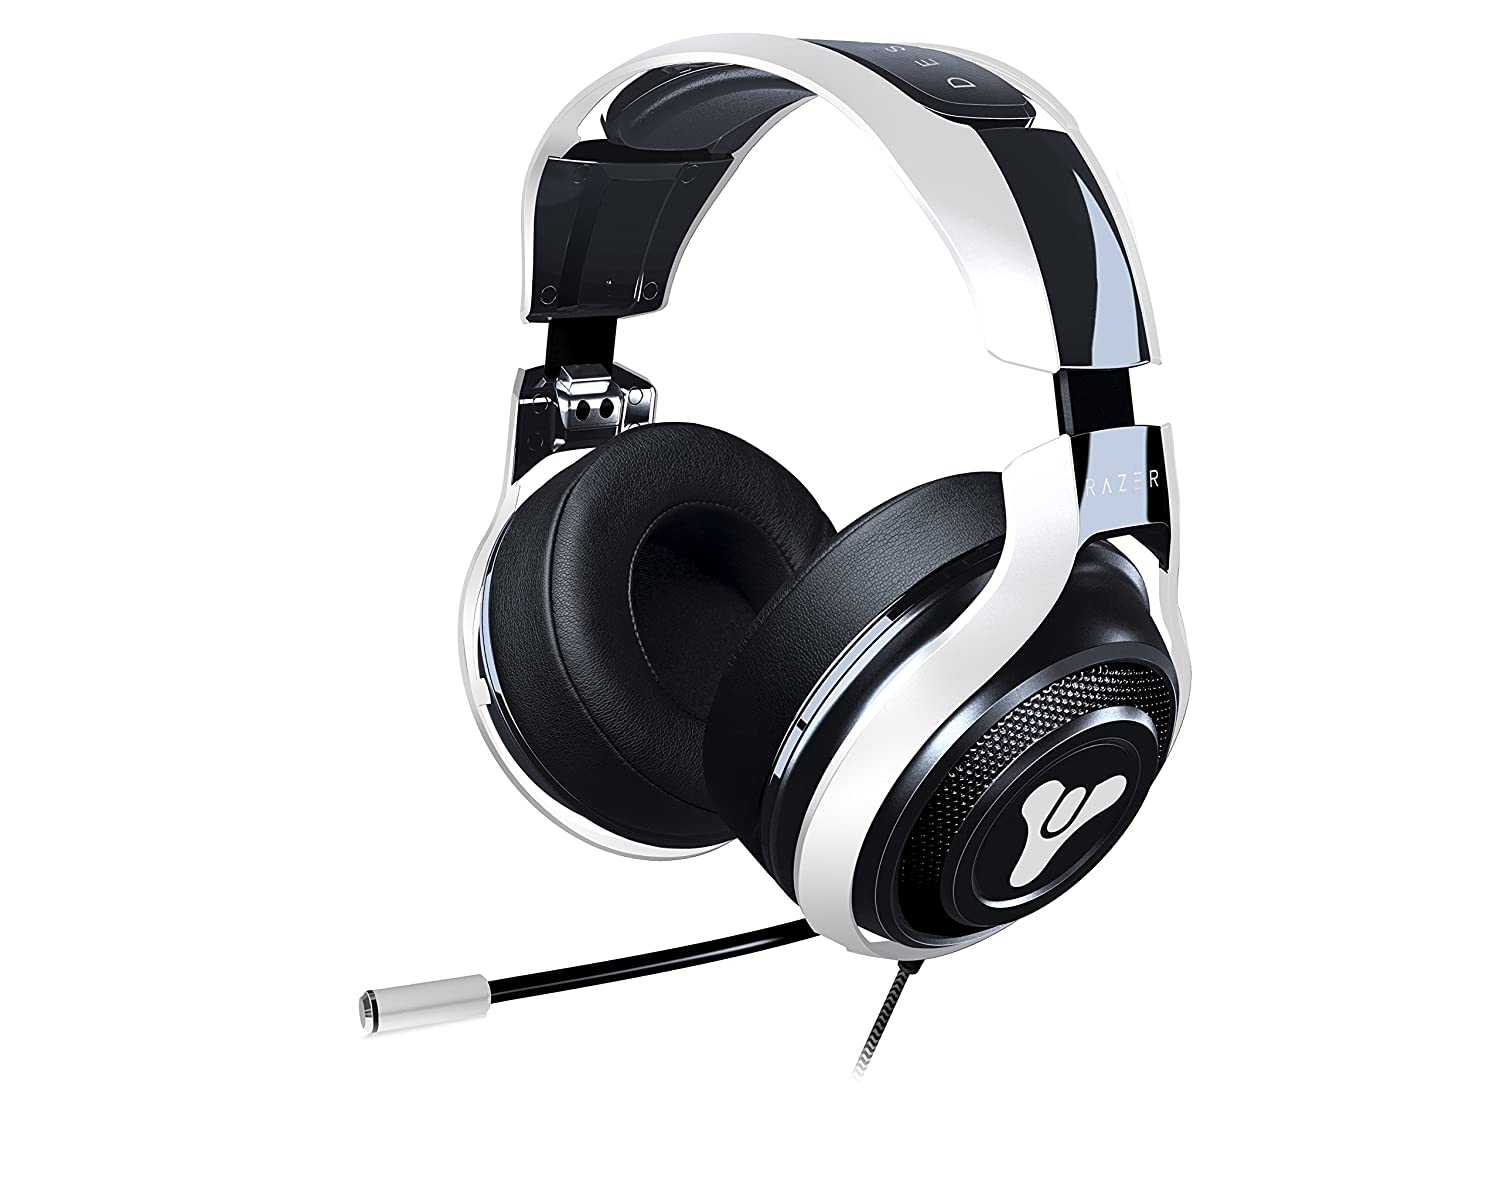 Razer Destiny 2 ManO'War Tournament Edition: in-Line Audio Control - Unidirectional Retractable Mic - Rotating Ear Cups - Gaming Headset Works PC, PS4, Xbox One, Switch, Mobile Devices Razer Inc. RZ04-01920400-R3M1